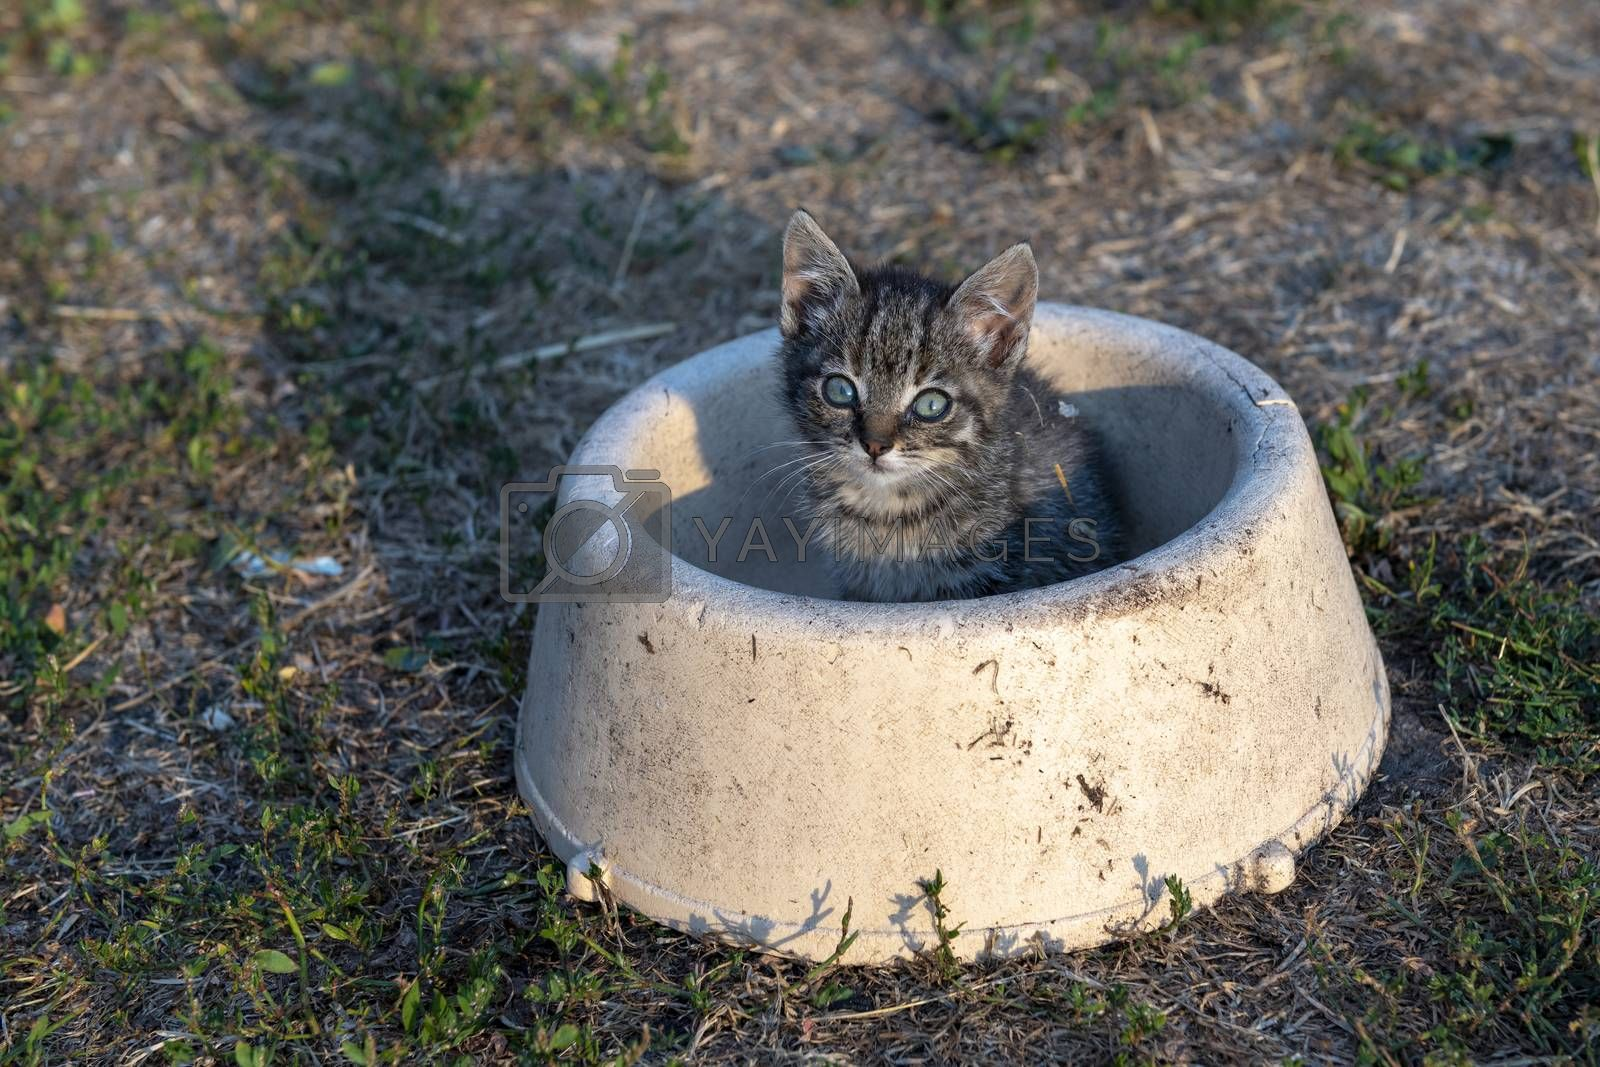 Young kitten on a farm in a feeding trough  by Tofotografie